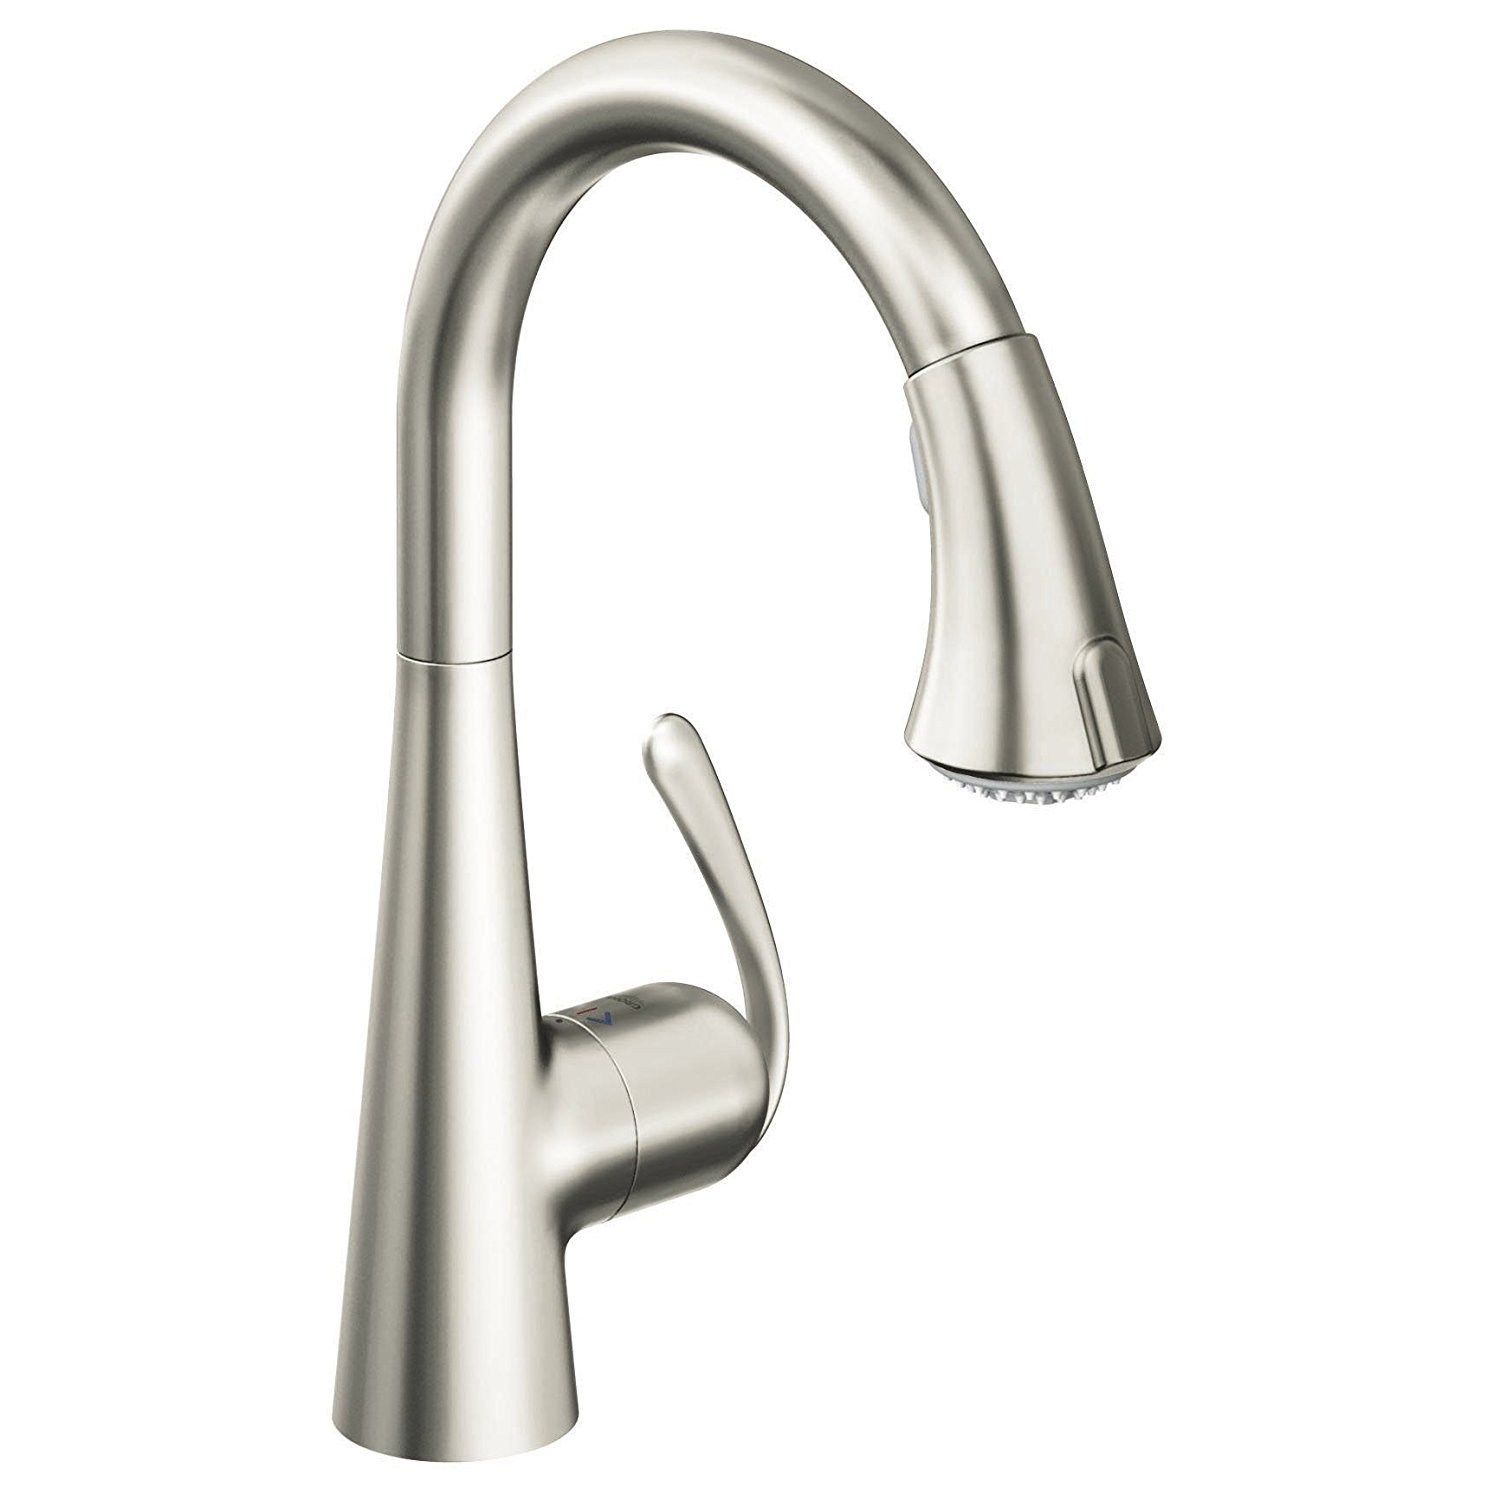 Beau Beautiful Grohe Kitchen Faucet Spray Head Replacement Parts